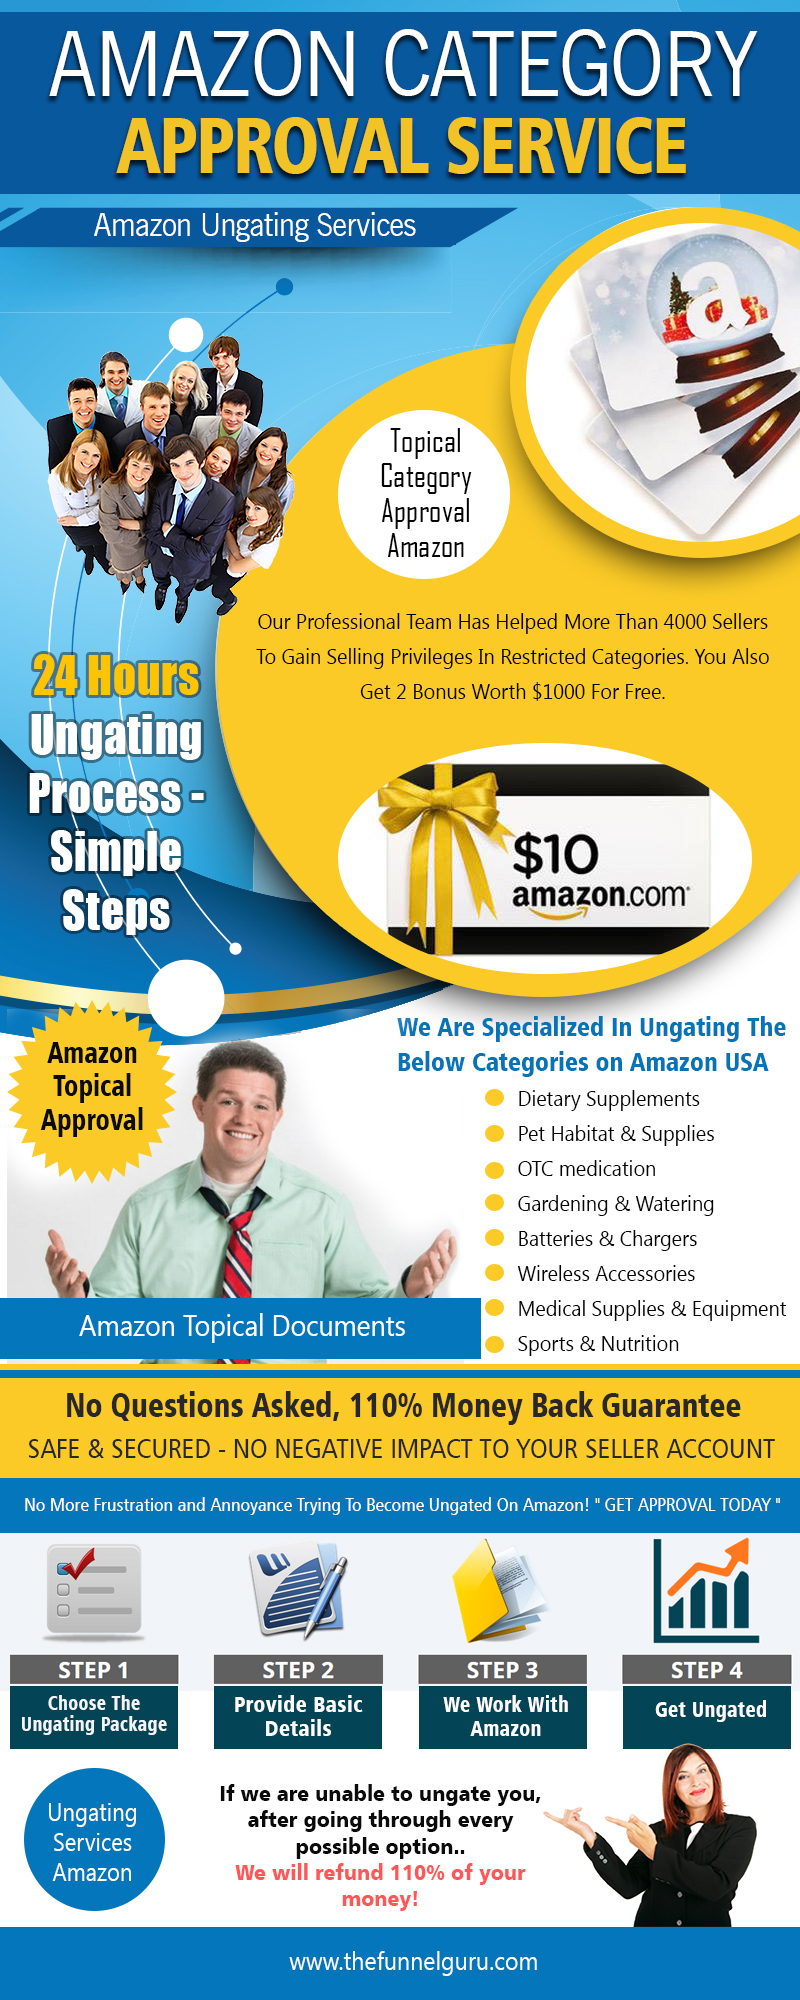 Amazon Category Approval Service | thefunnelguru.com